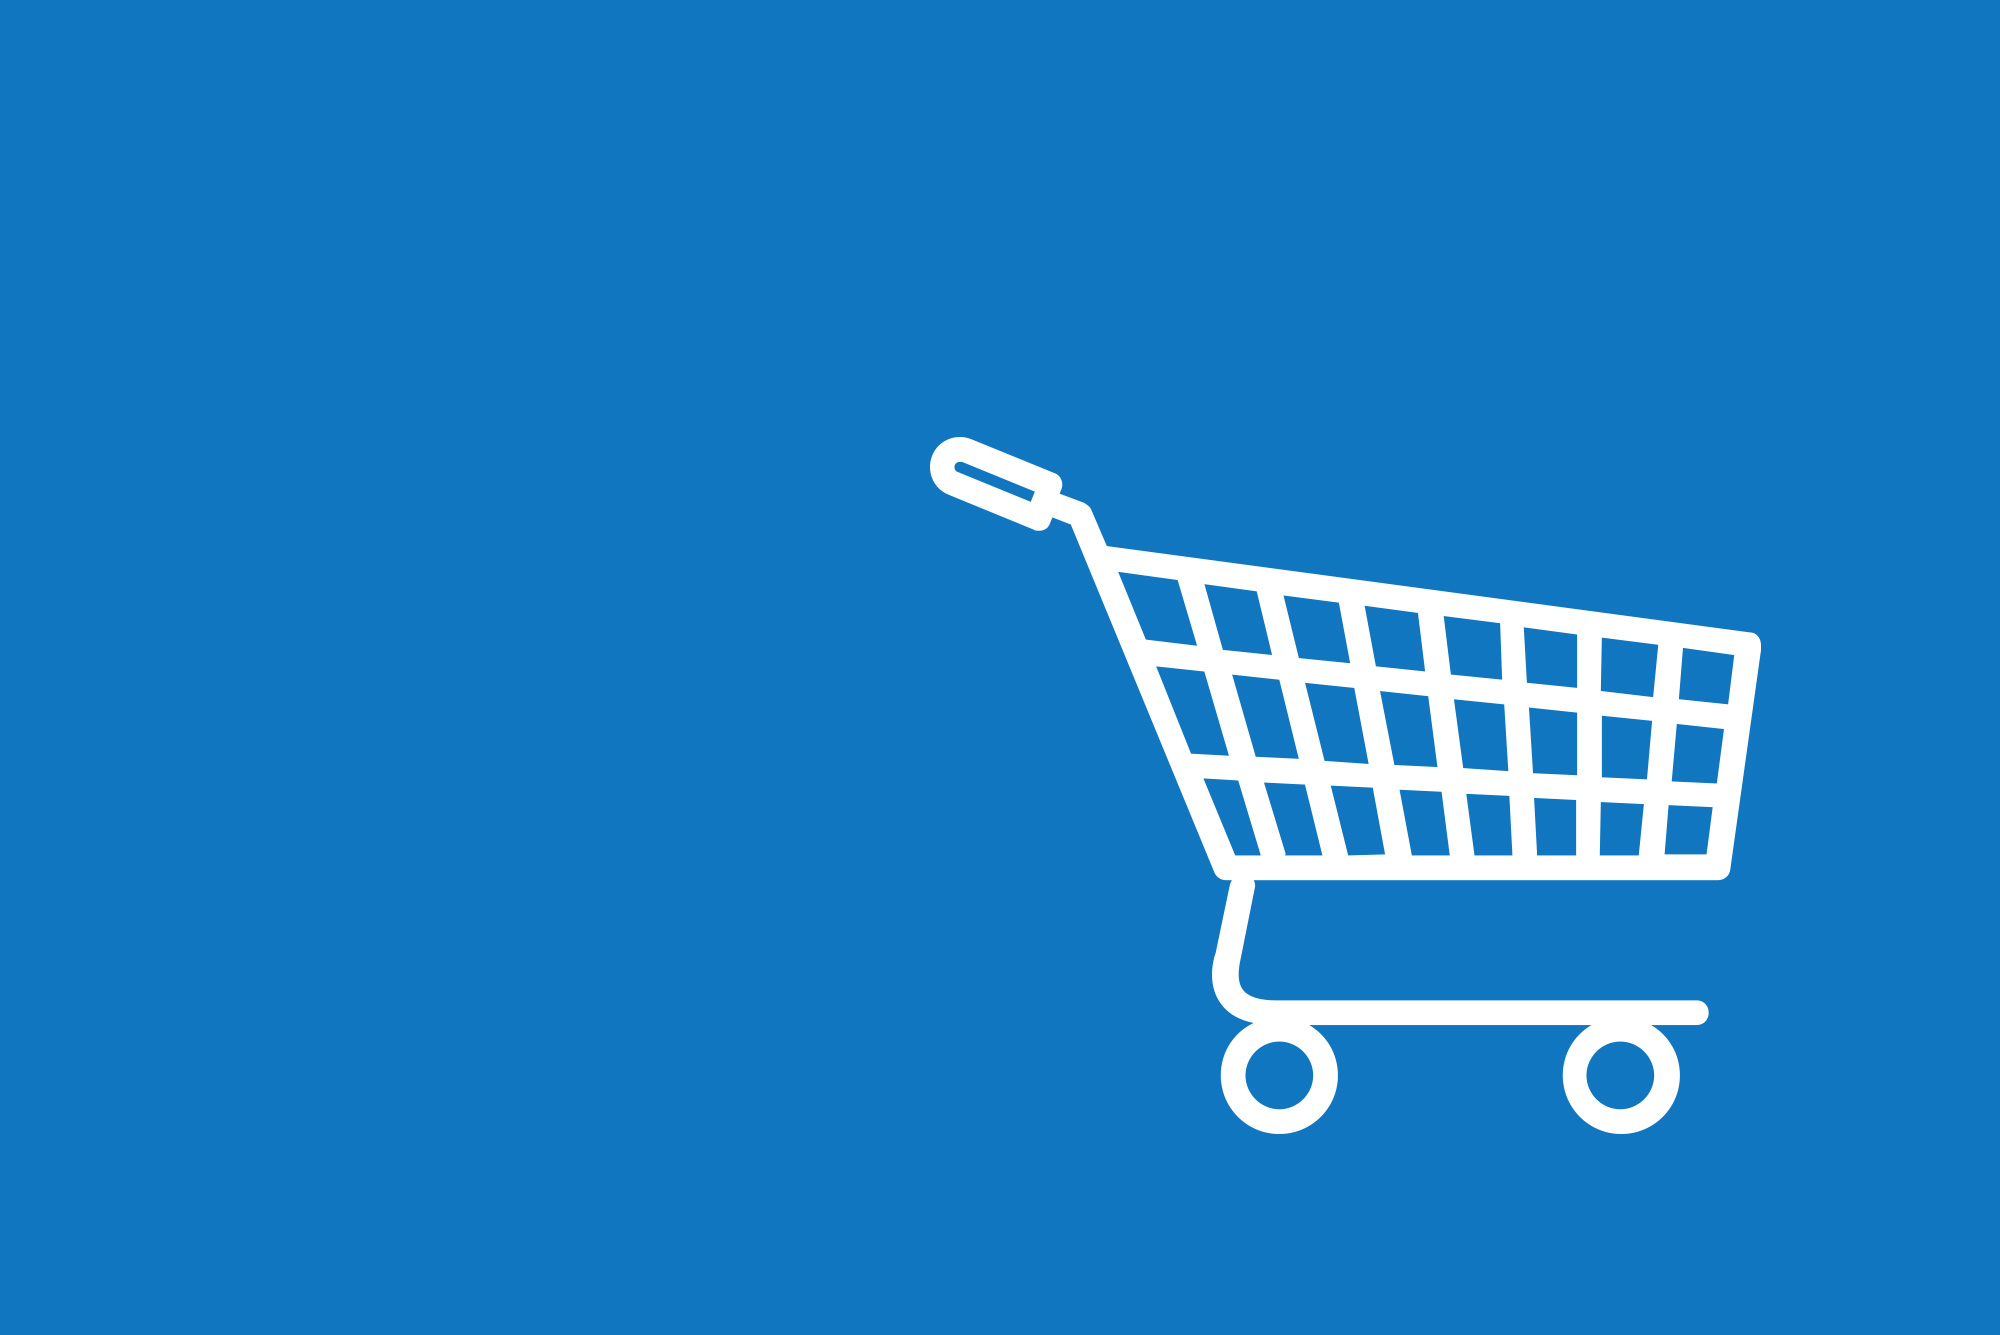 Shopping trolley icon on blue background